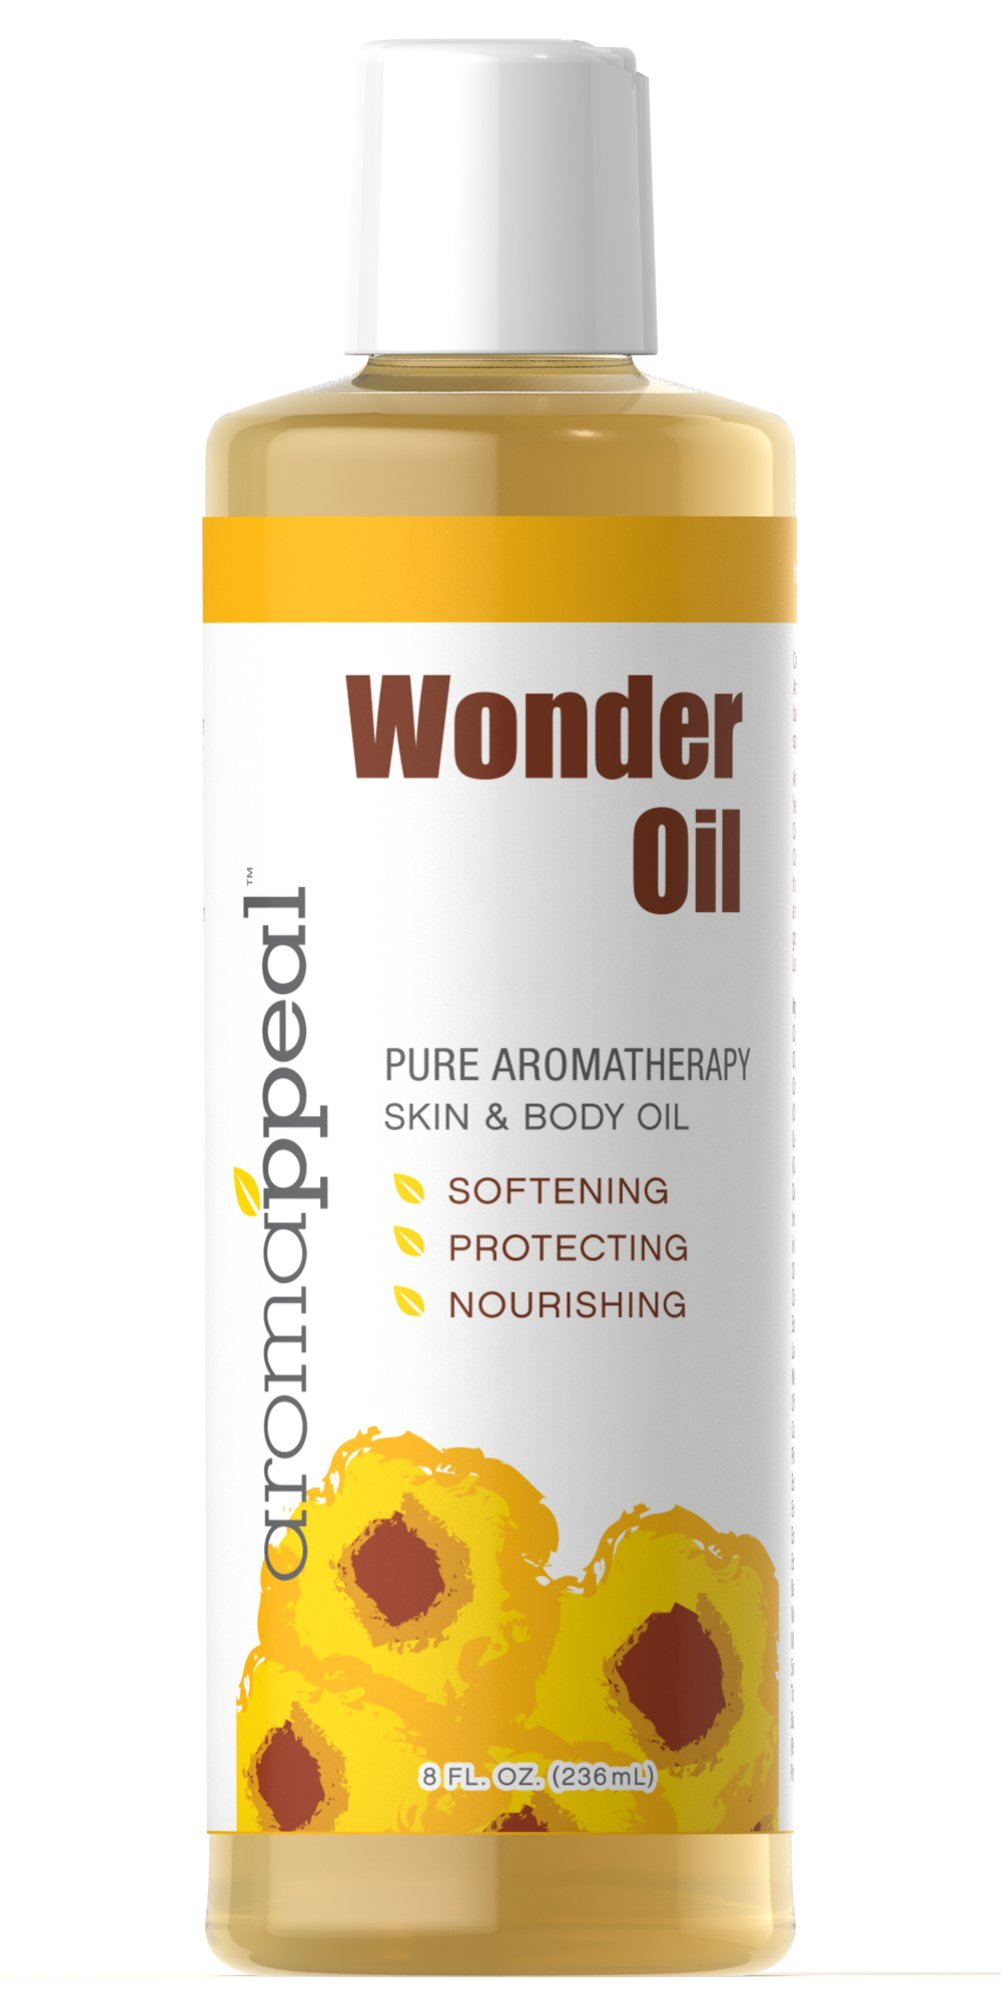 Wonder Oil <strong></strong><p><strong>This product is a customer favorite!</strong></p>A wonderful fusion of oils, herbs and fruits for the body<p></p><p>Includes a medley of Olive, Sunflower Seed, Wheat Germ, Sweet Almond, Sesame and Jojoba Oils</p><p>Enriched with the lively citrus scents of Grapefruit, Lemon and Orange</p><p>This versatile formula helps replenish your hair, skin and nails</p><p>Use this